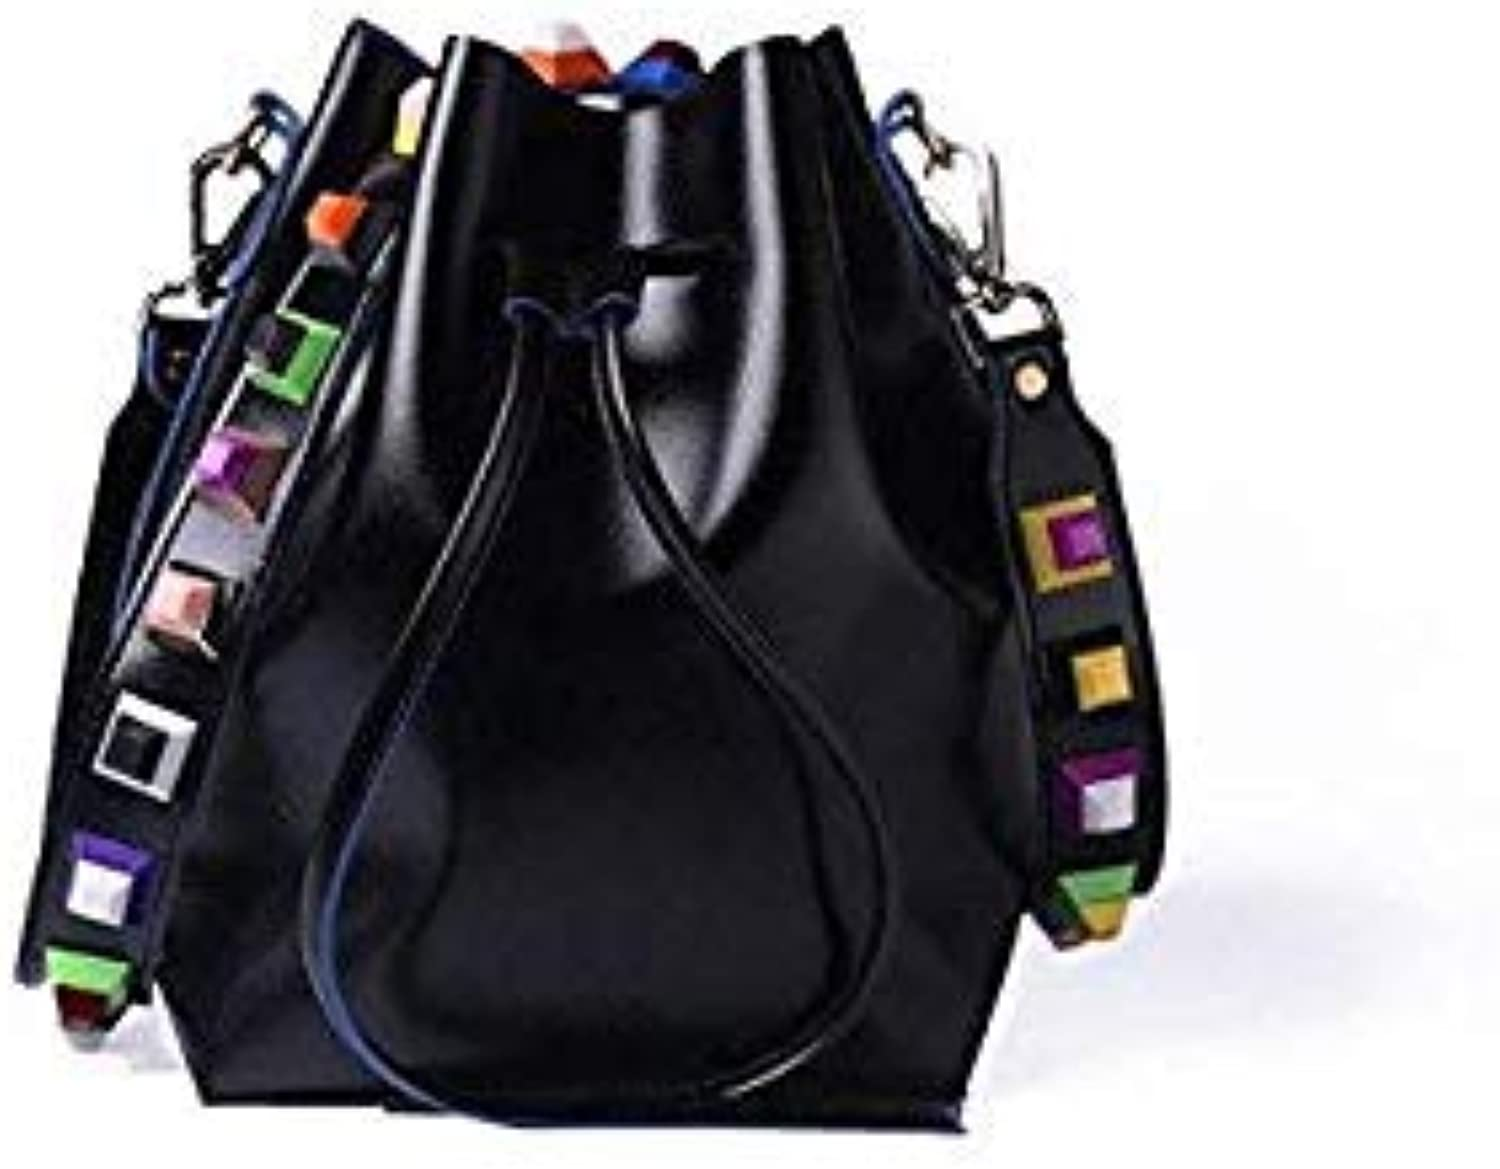 c26061ca57575 Fashion Leather Shouder Bags for Women Rivet Shoulder Strap Handbags ...